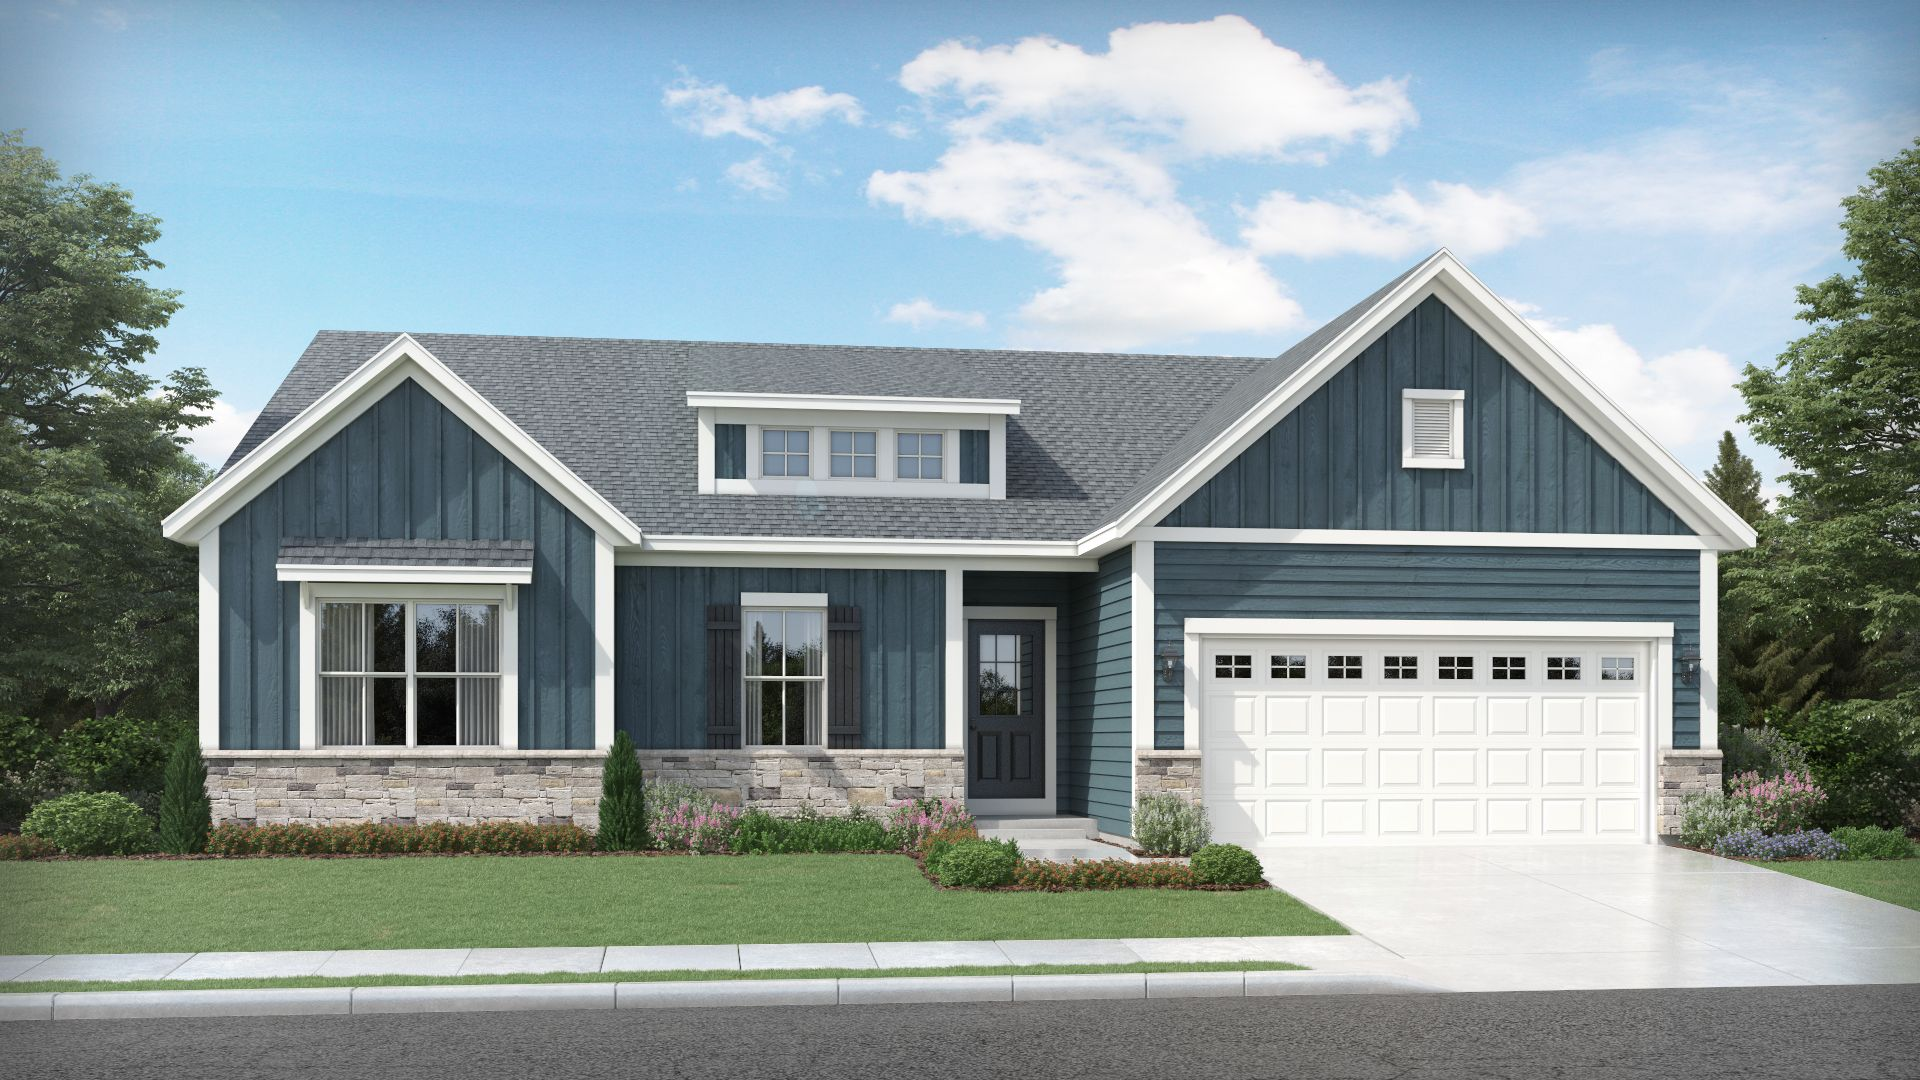 Exterior featured in the Hudson By Olthof Homes in Gary, IN